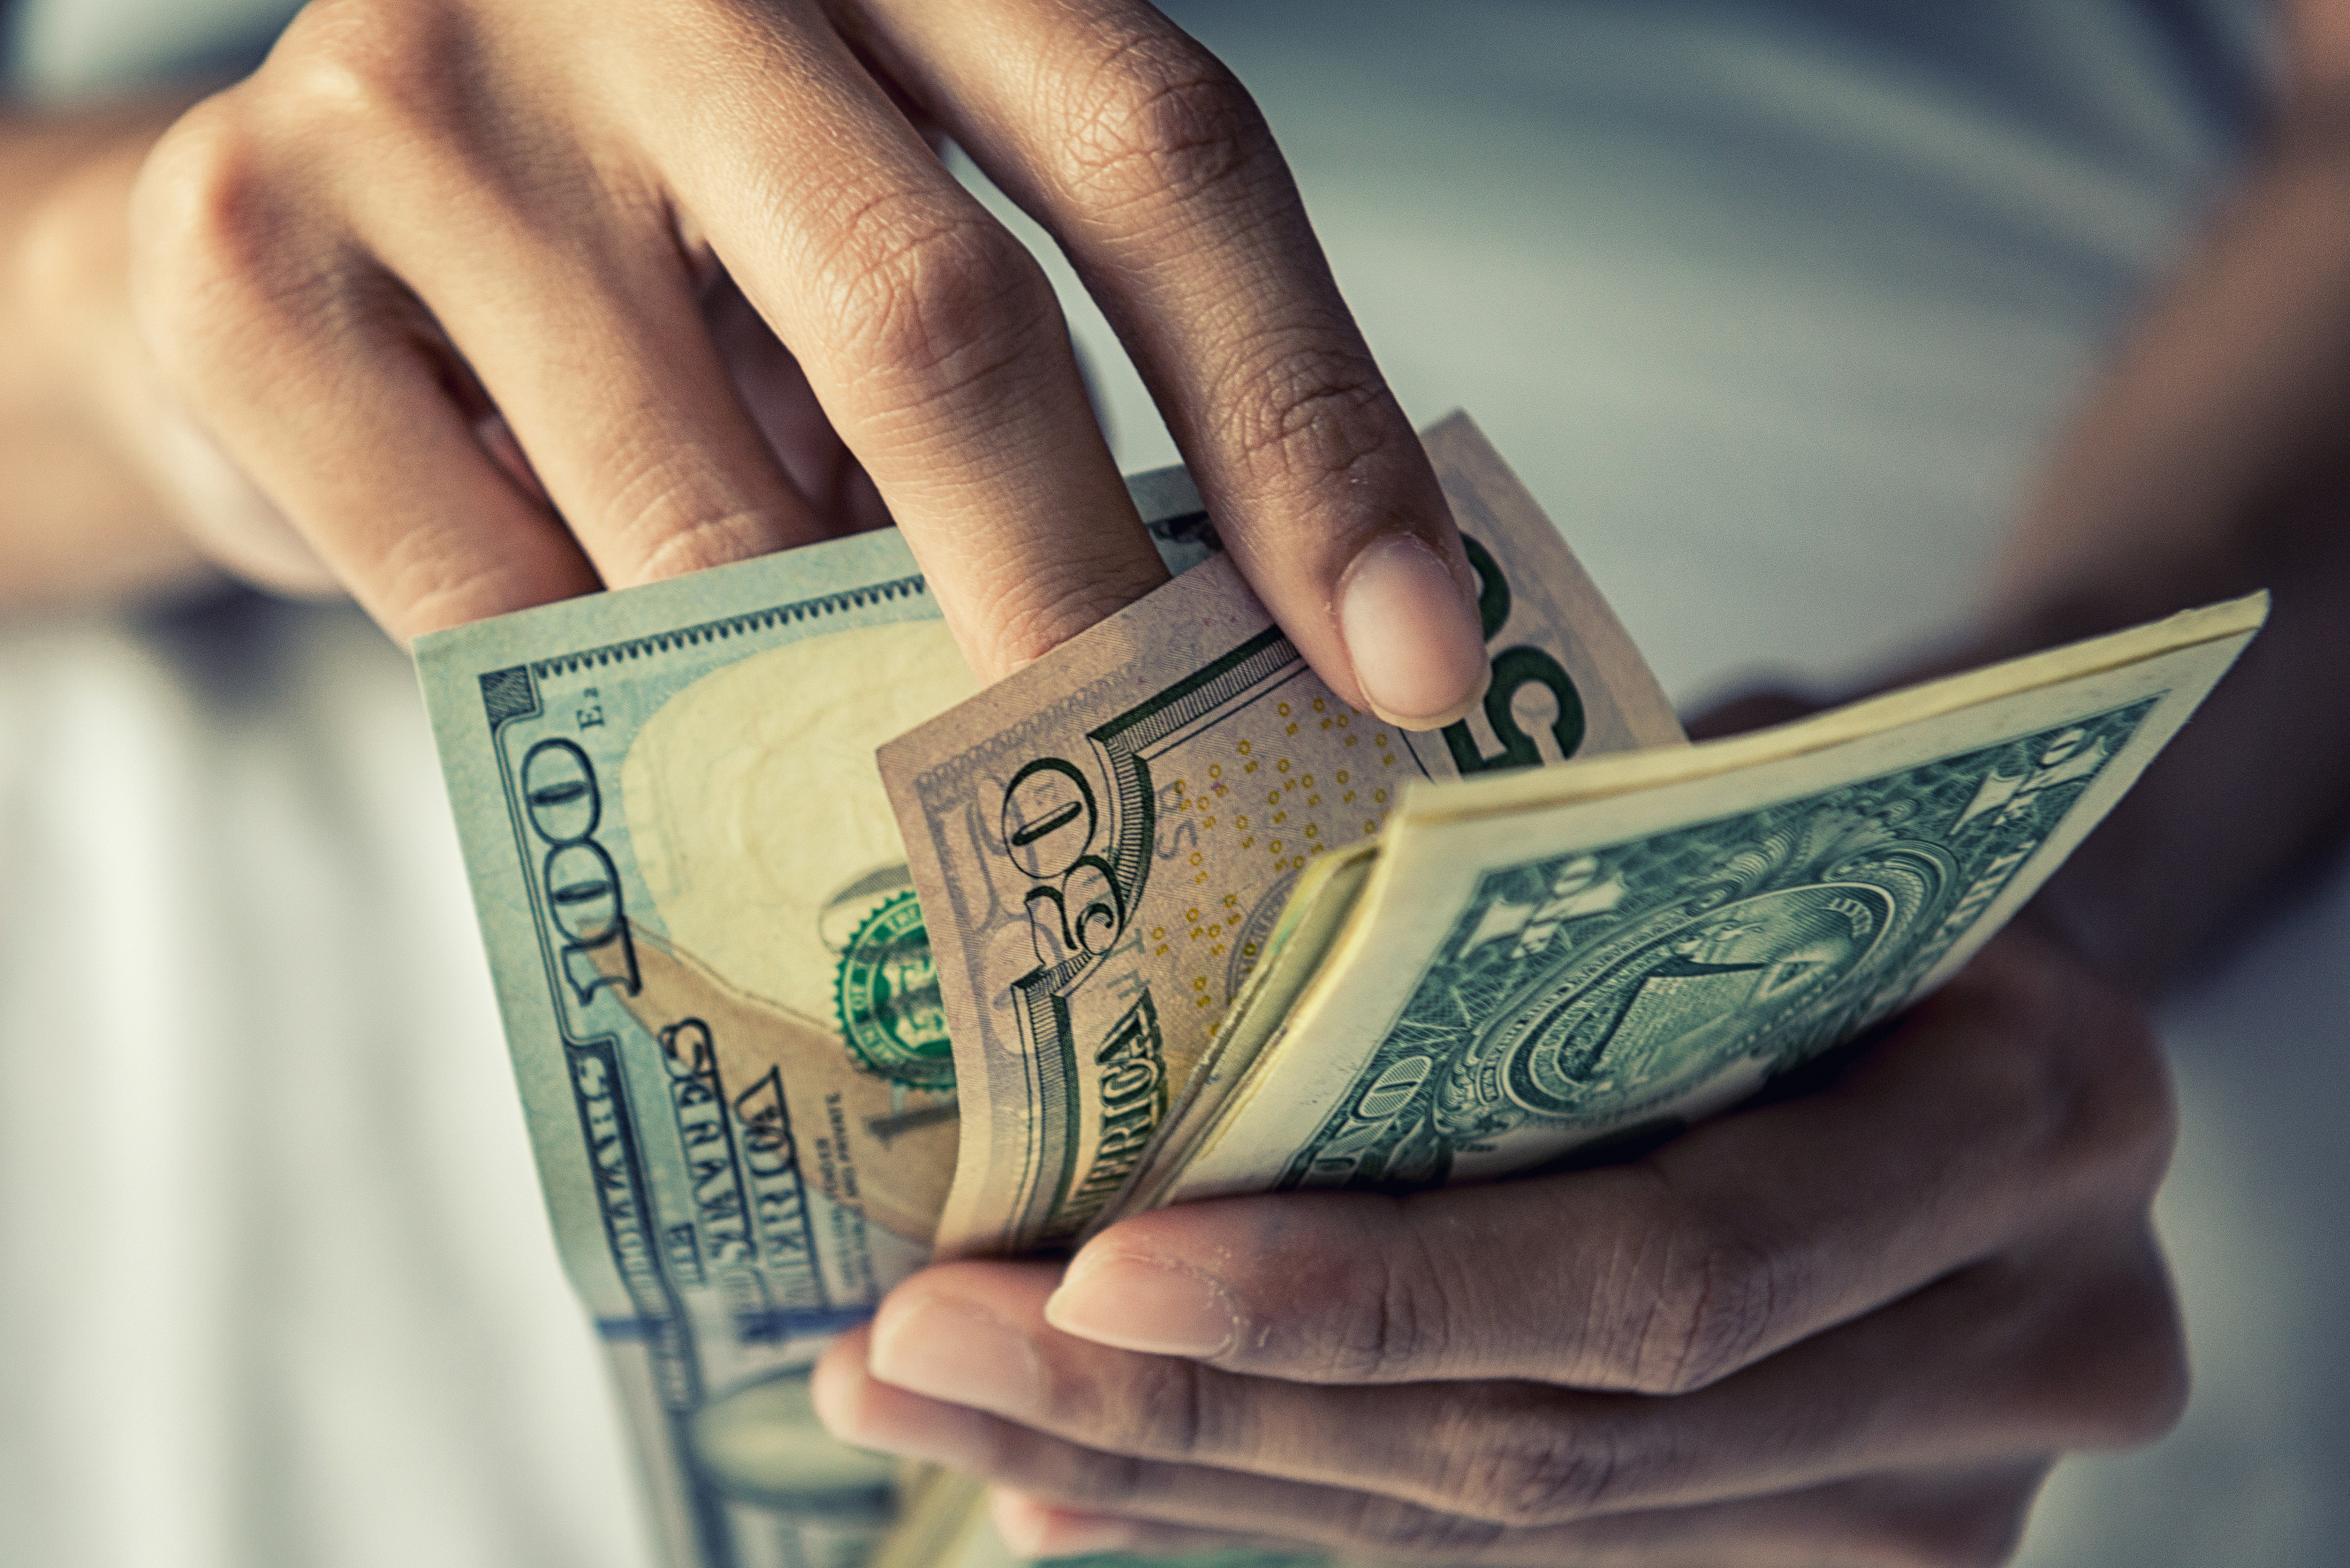 Close-up Hands counting money American dollars. Shutterstock